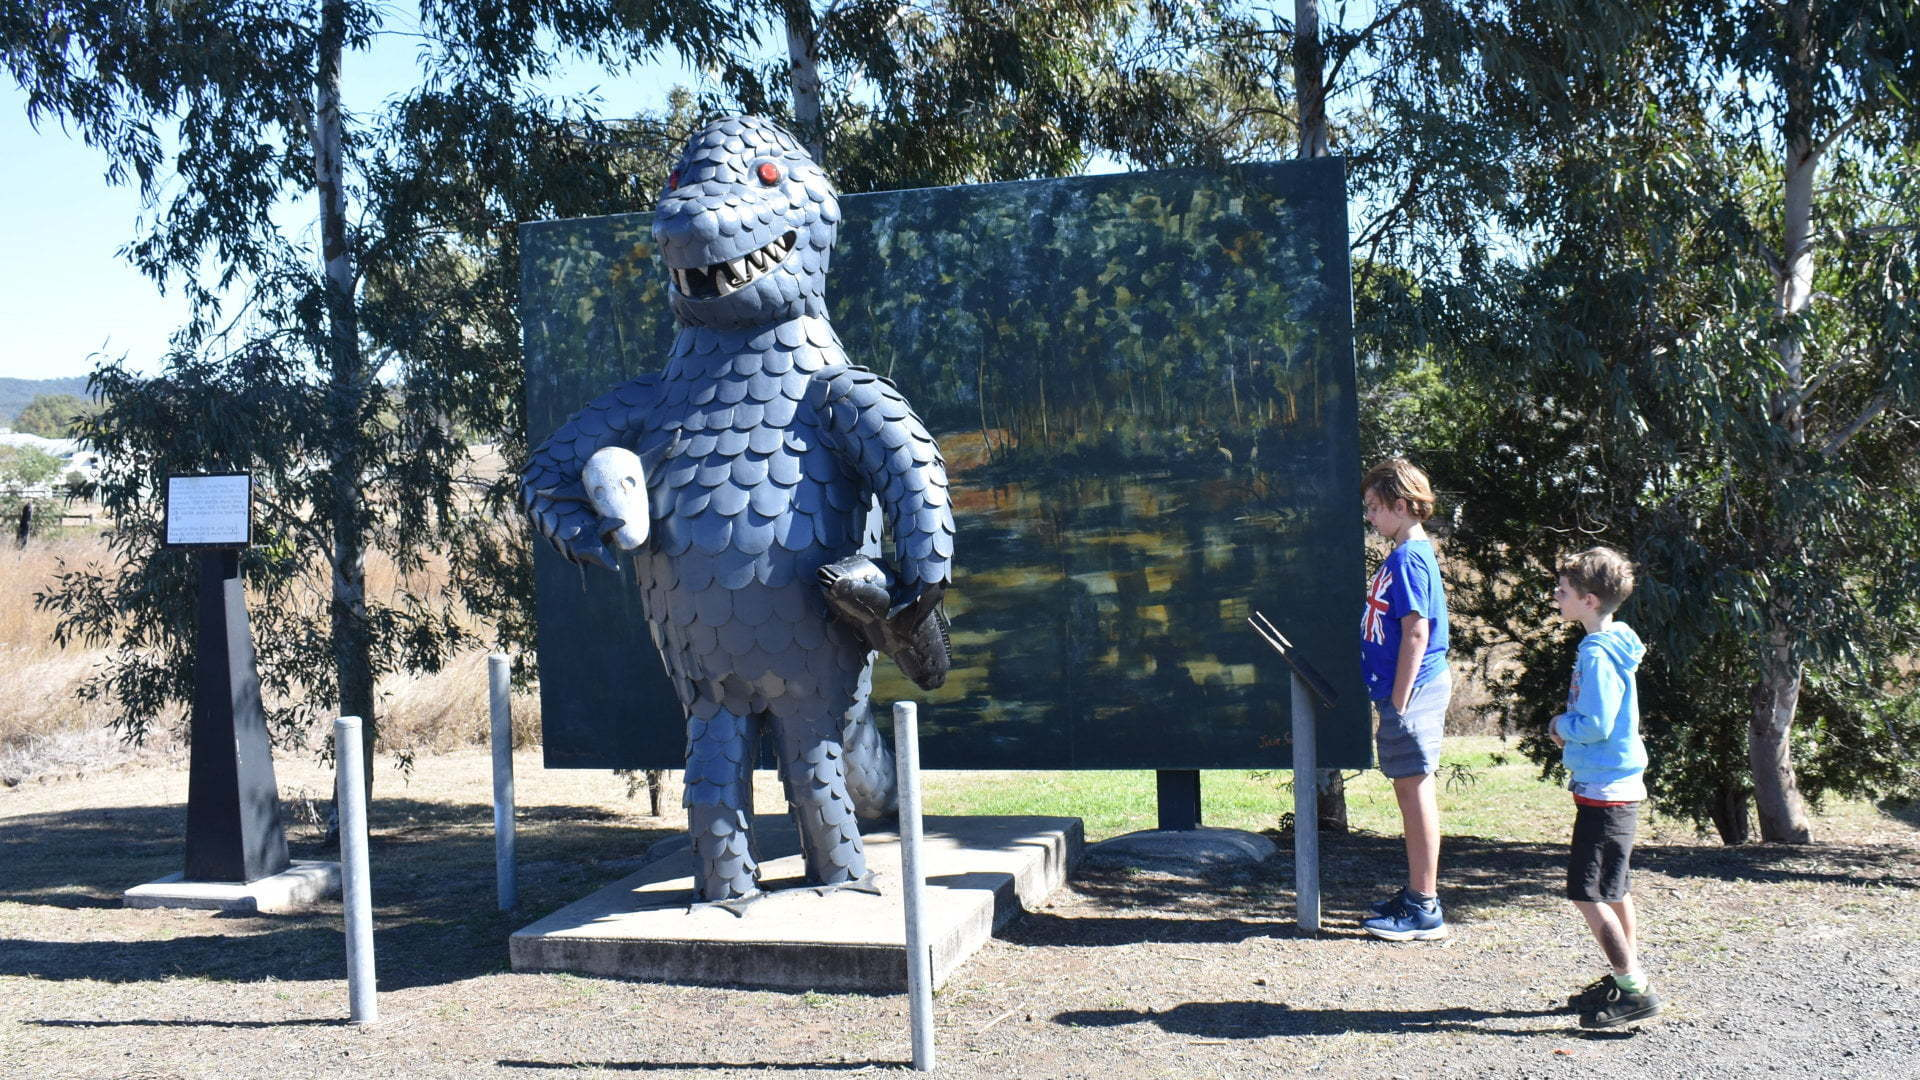 Sculpture of a bunyip in front of a mural, at the Bunyip Statue in Mulgildie